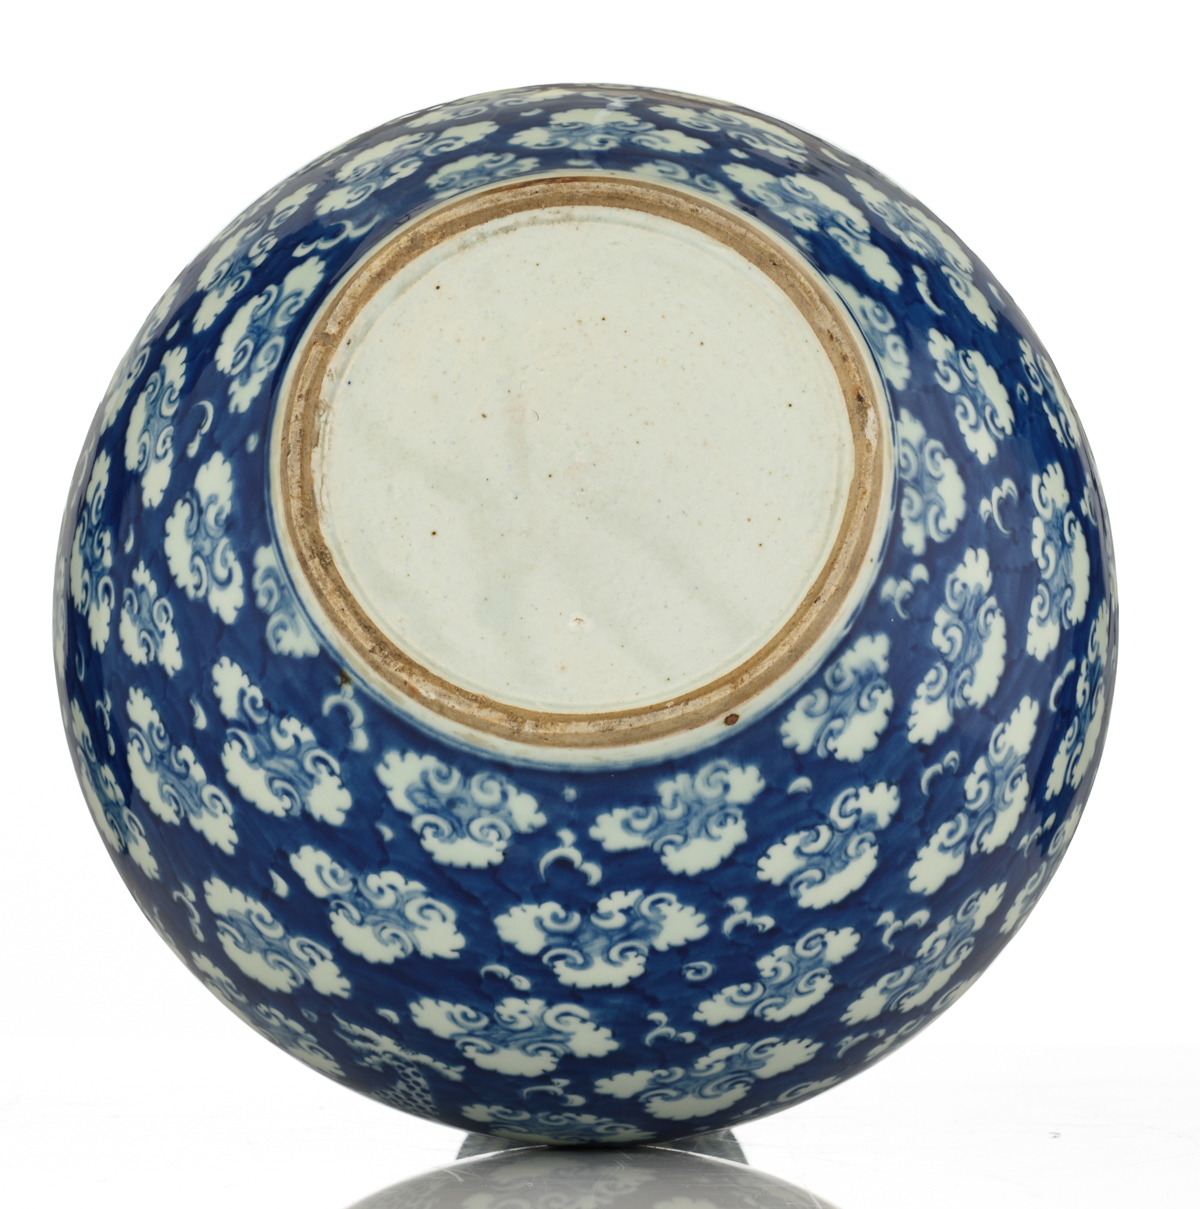 Lot 37 - A Chinese blue and white bottle vase decorated with a dragon chasing the flaming pearl, H 50 cm